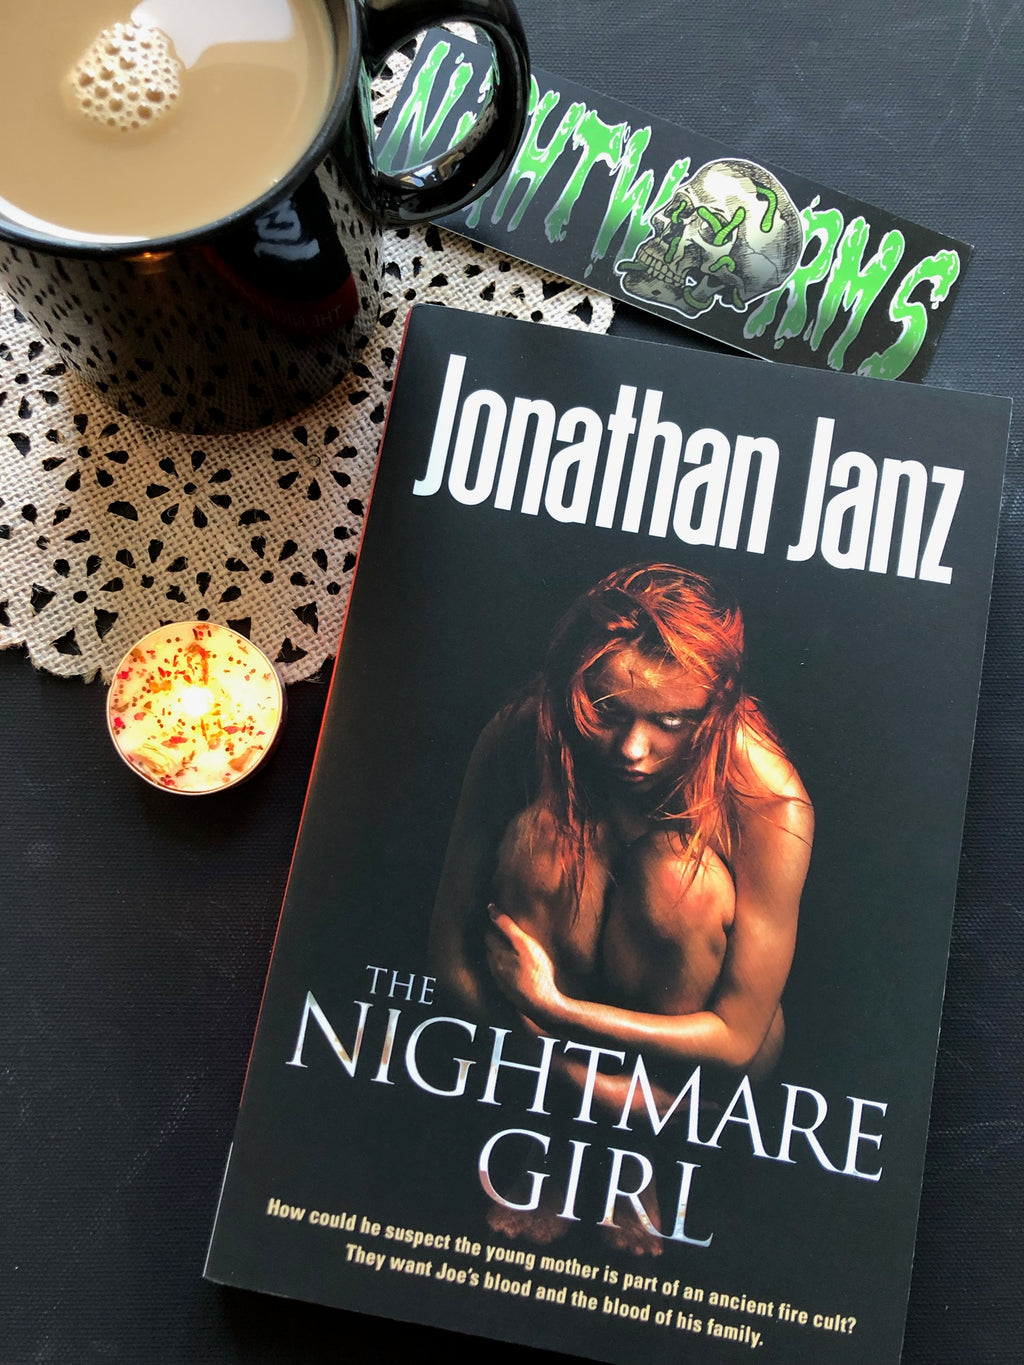 The Nightmare Girl by Jonathan Janz *SIGNED*